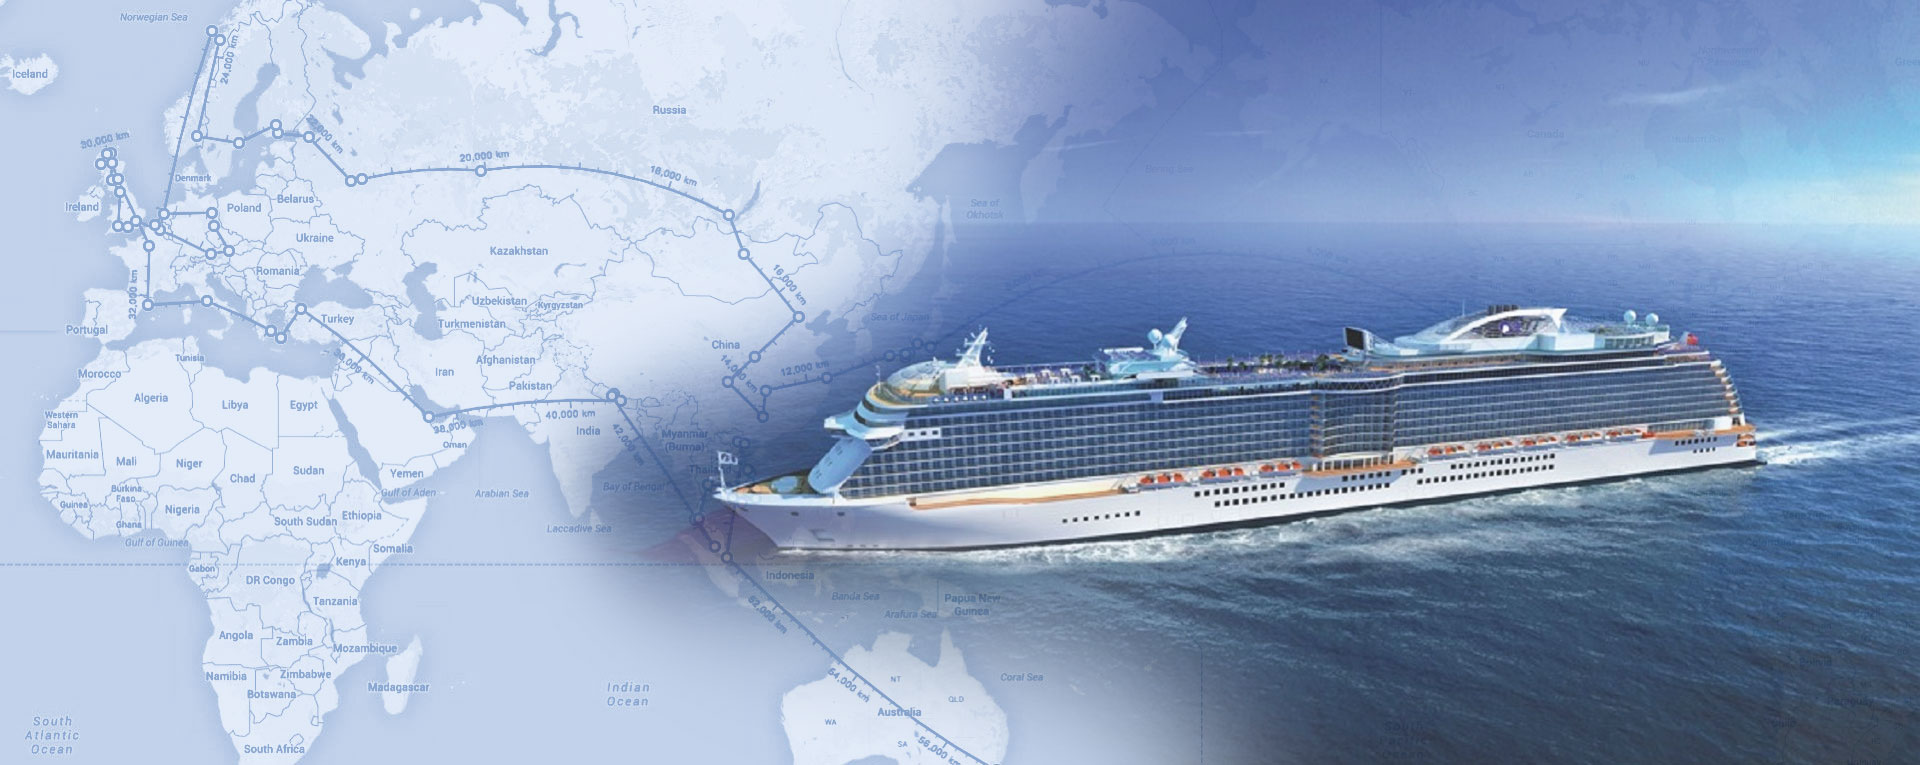 World Tour on a Cruise